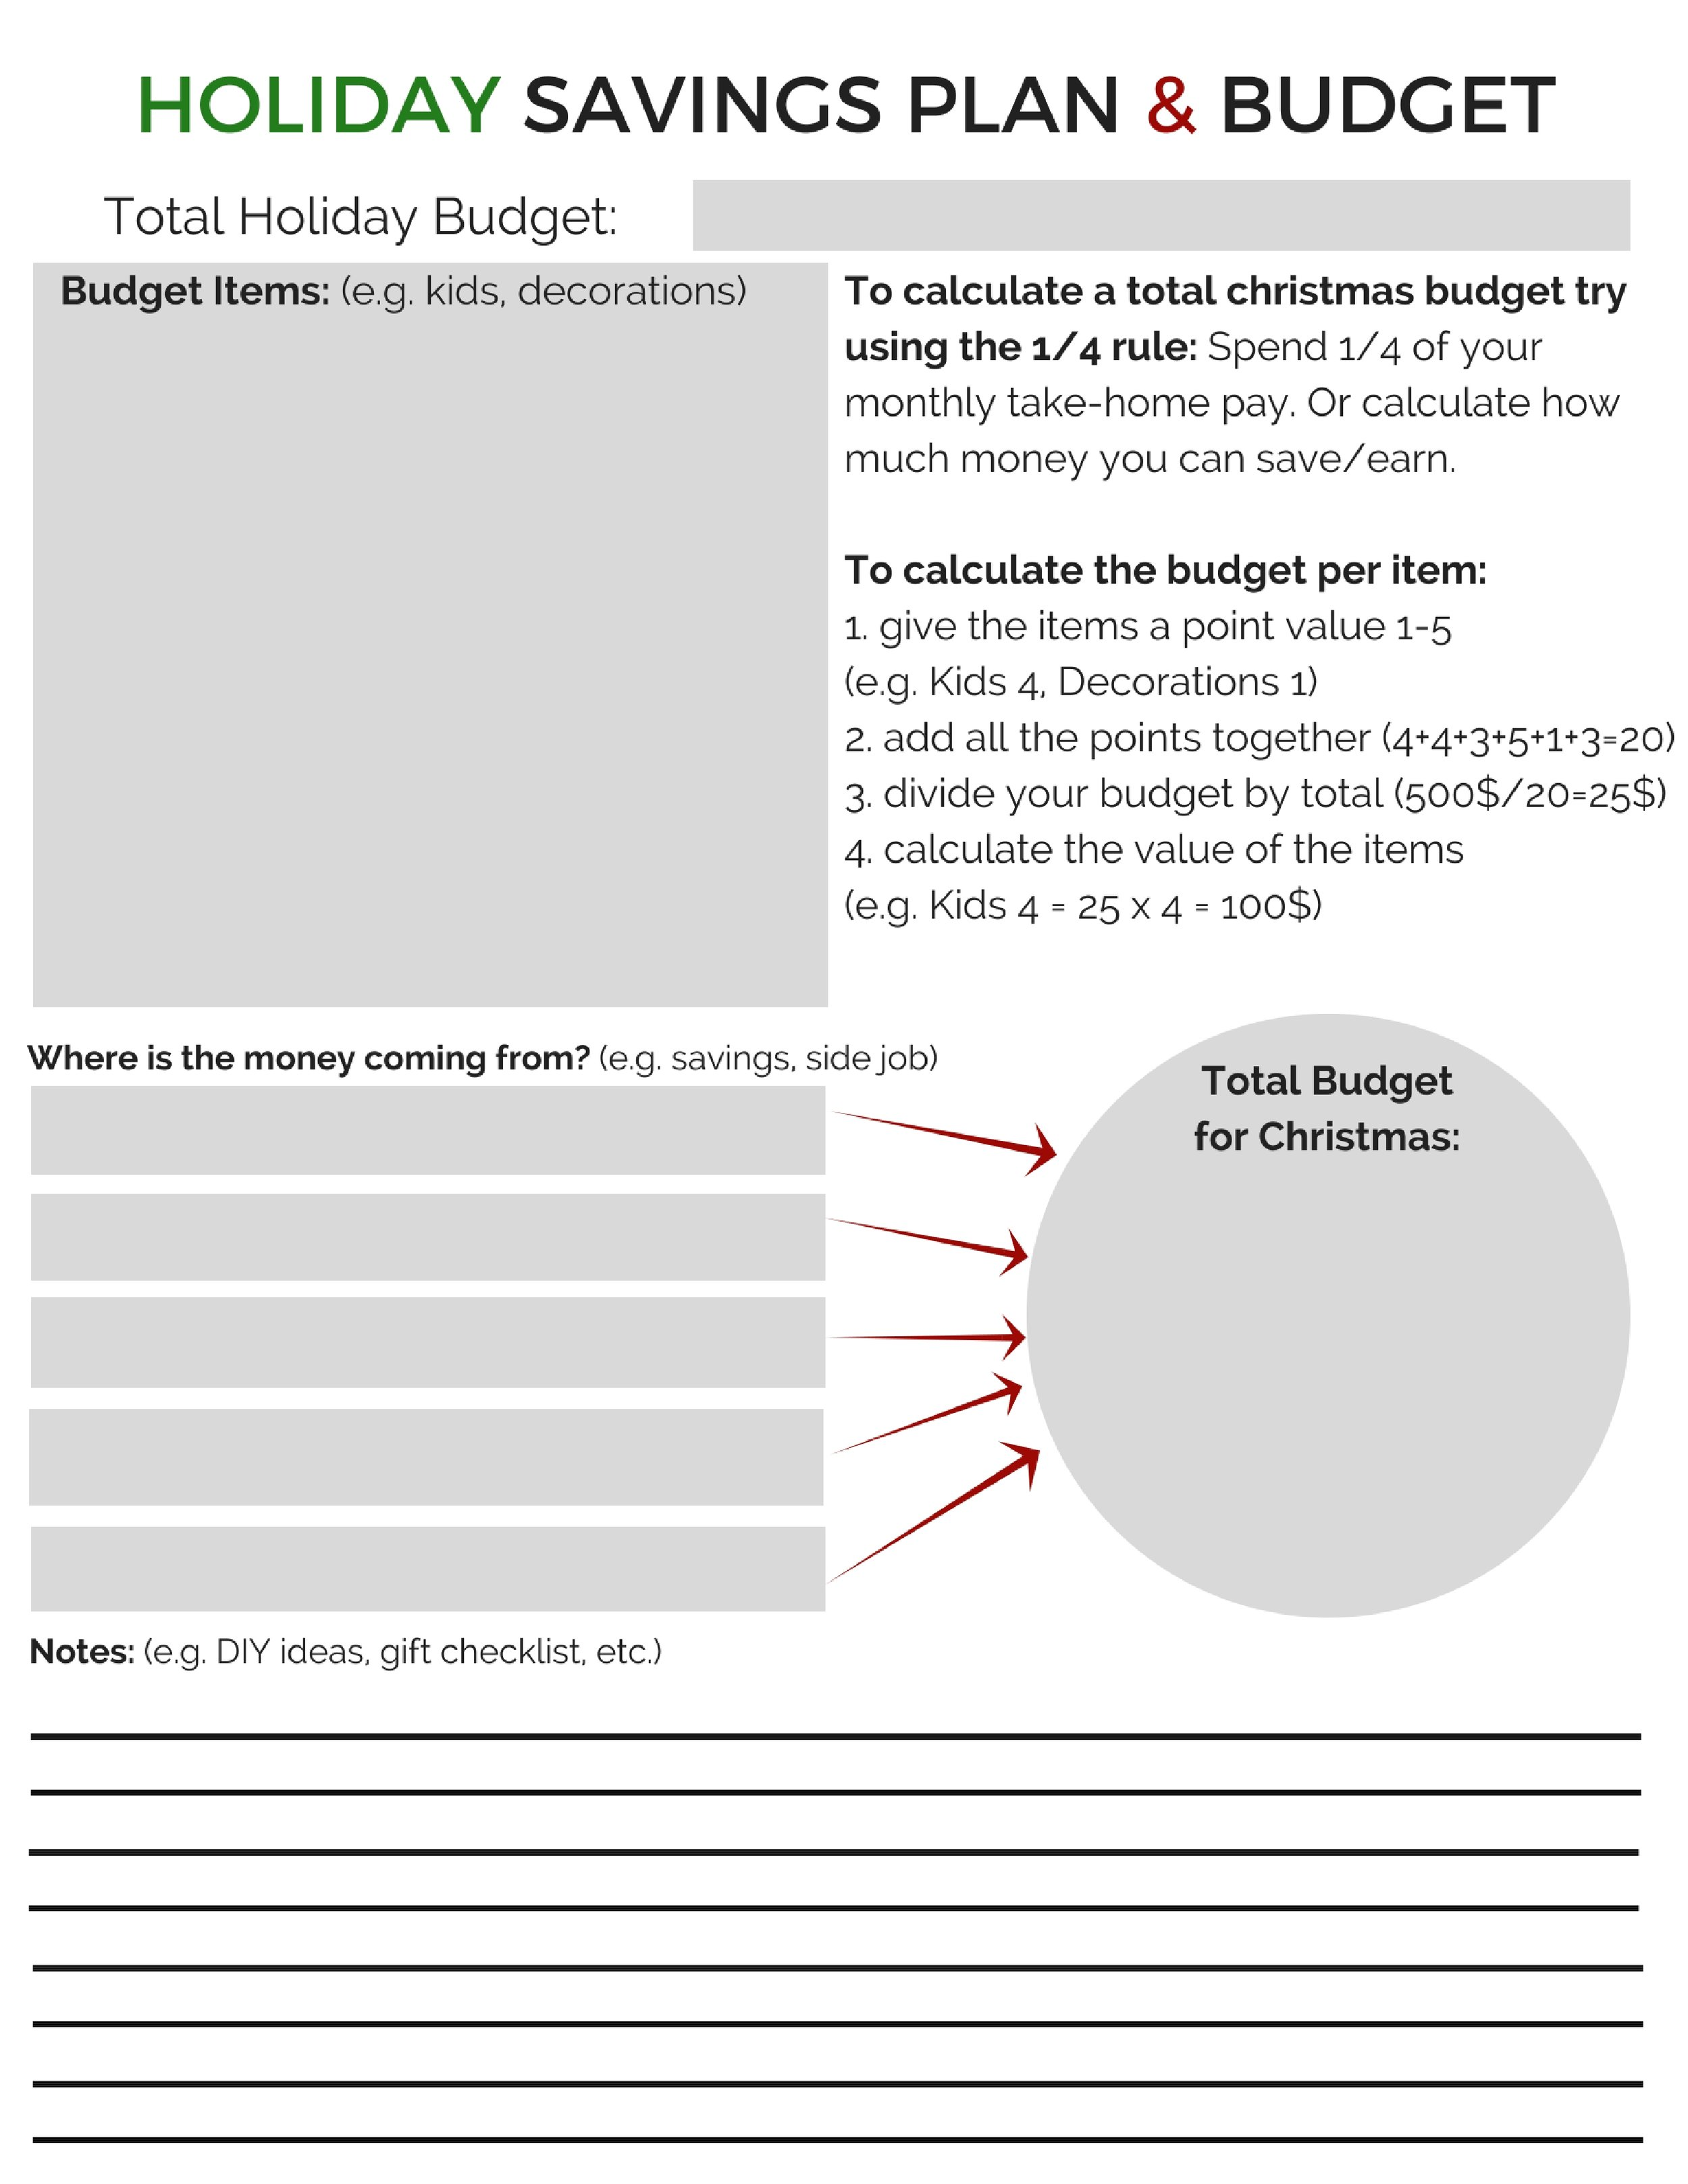 christmas budget holiday budget christmas gift ideas christmas on a budget christmas budget planner christmas budget gifts last minute christmas budget ideas christmas budget savings plan christmas budget list christmas budget kids dave ramsey